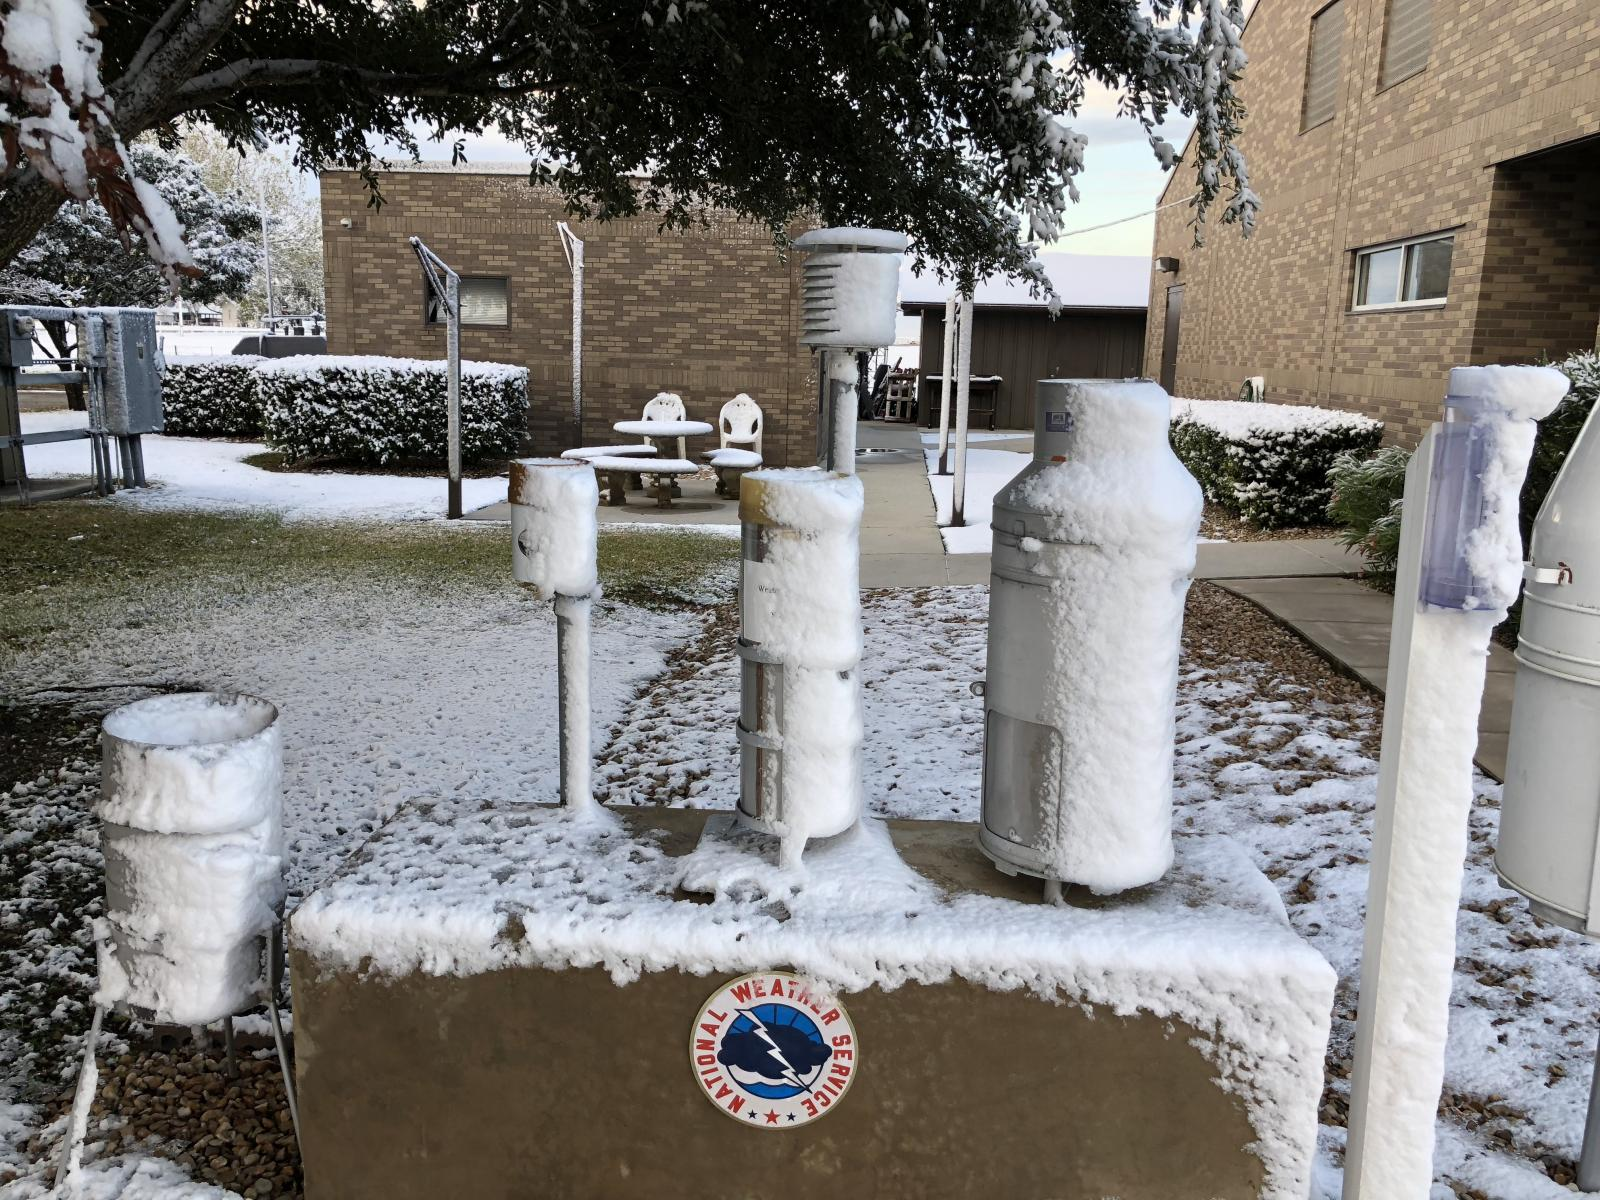 NWS Austin/San Antonio Weather Forecast Office Gauge Display